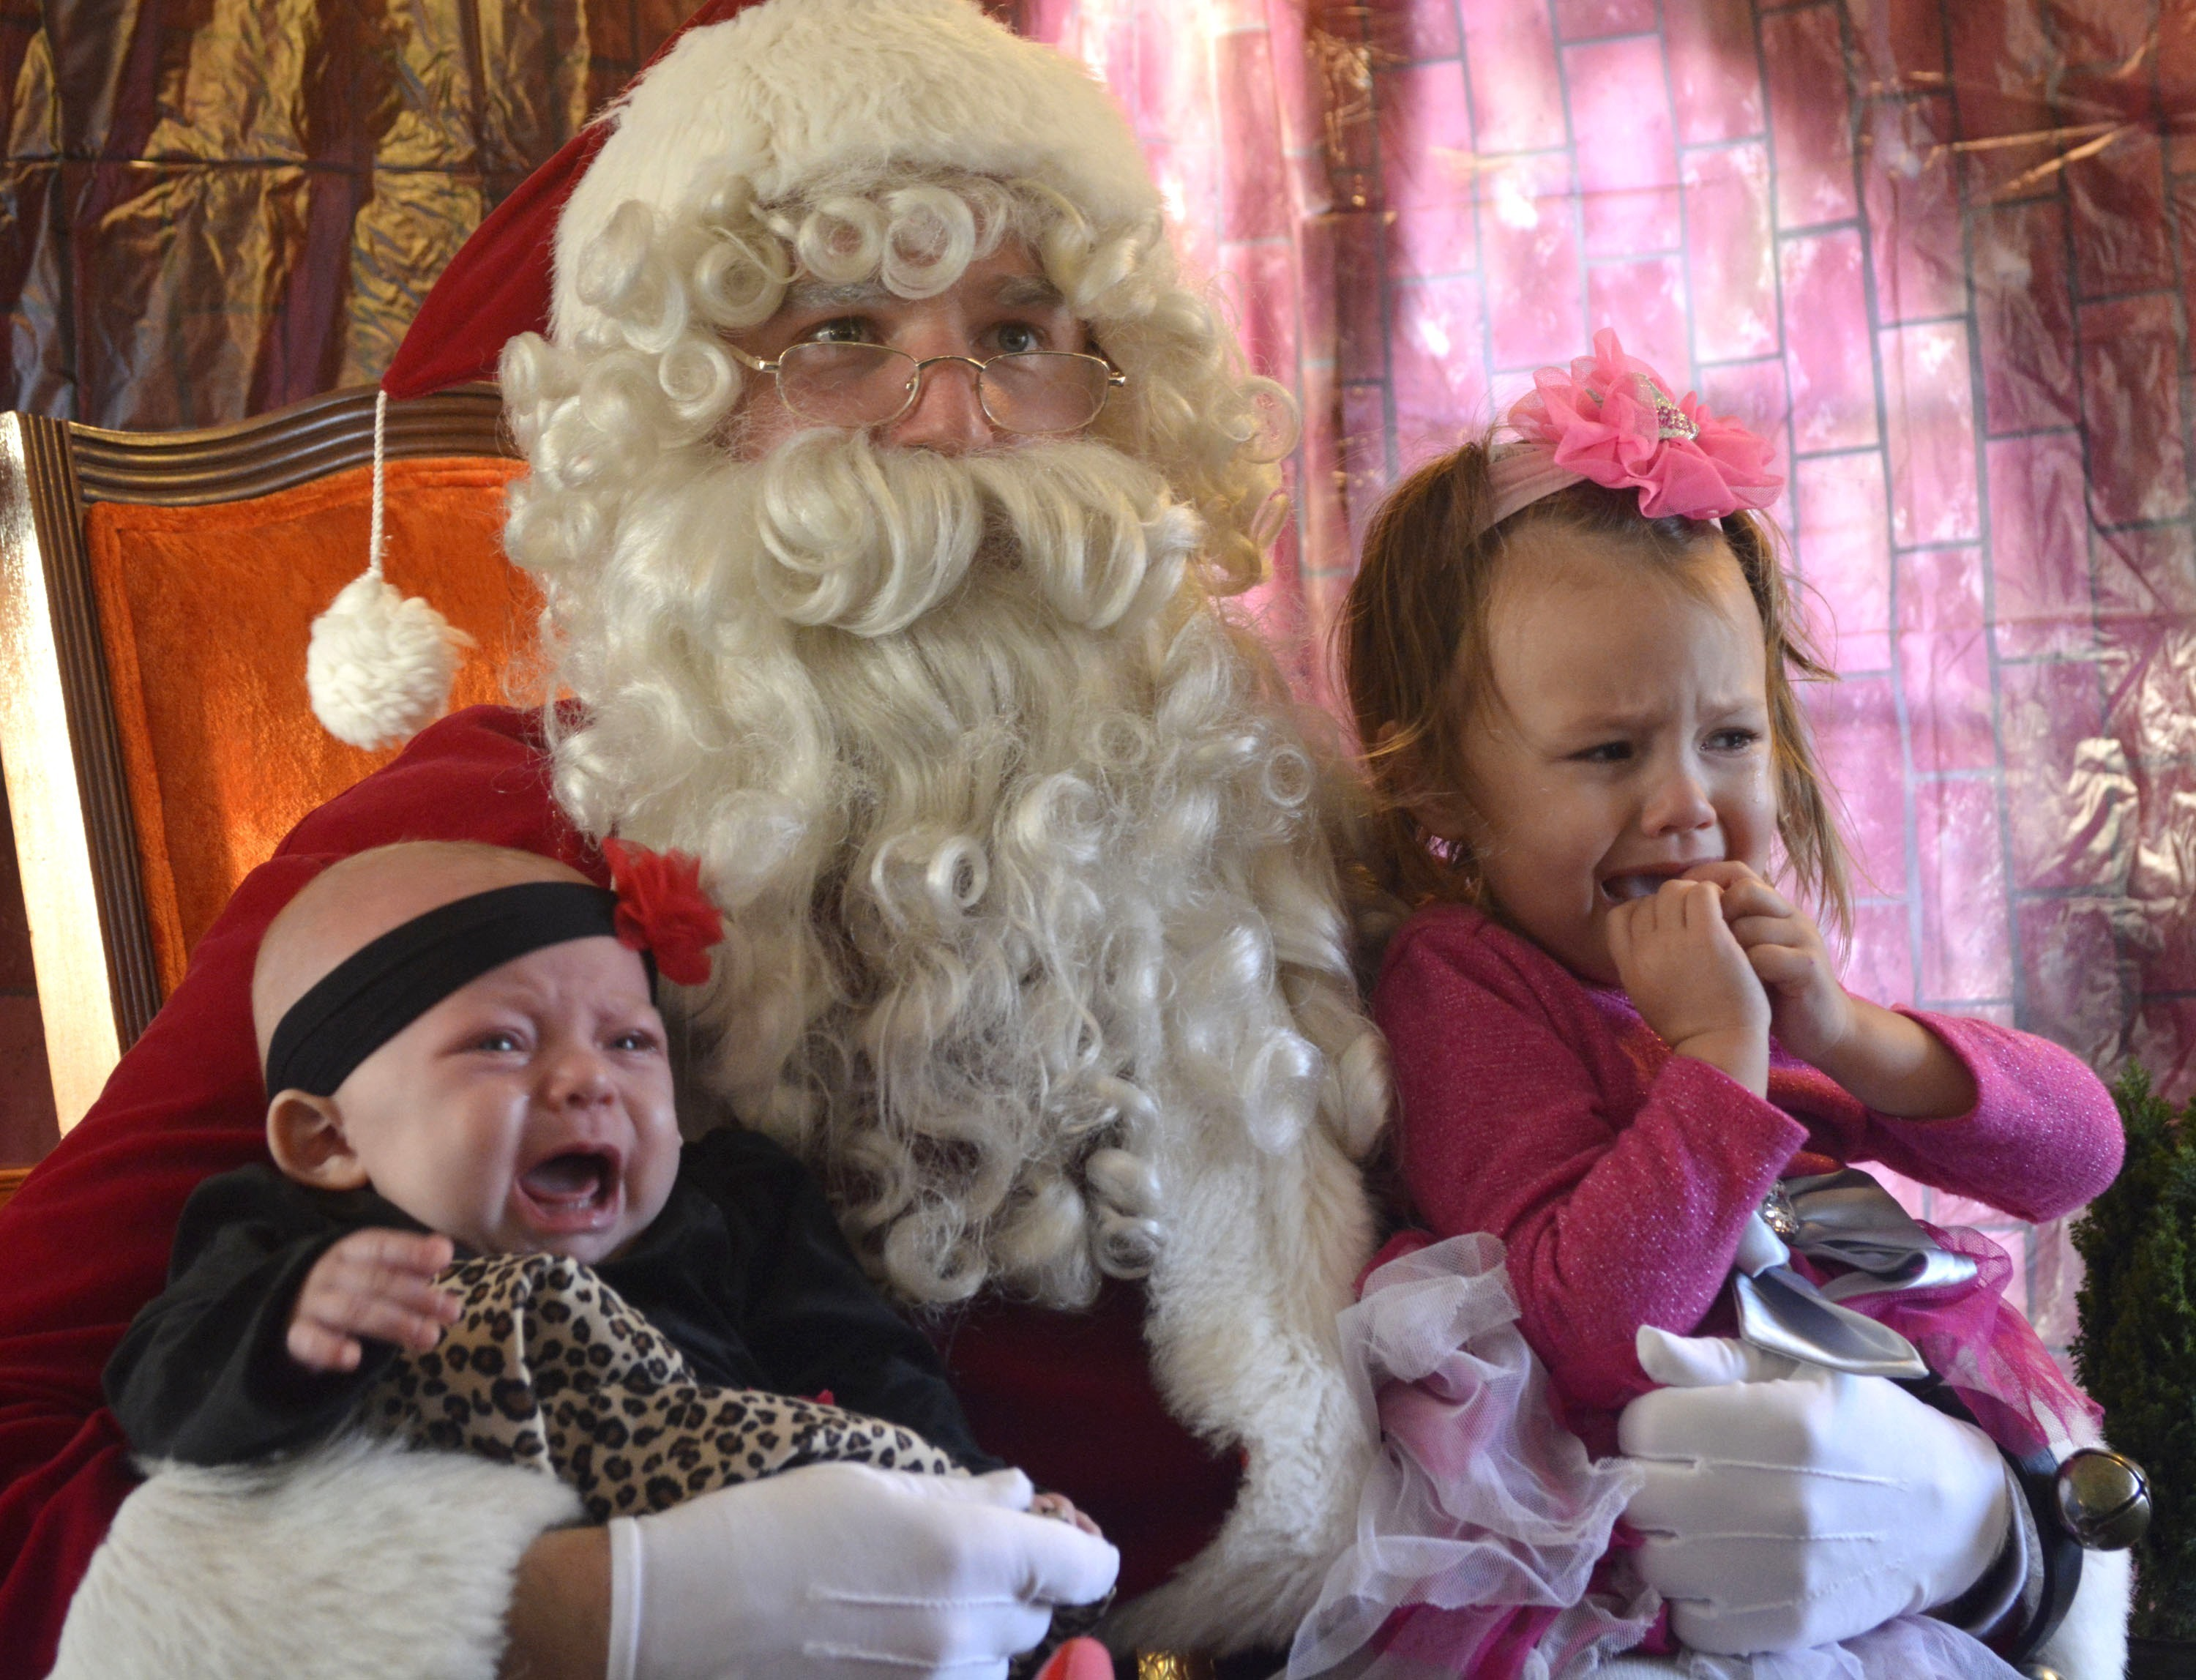 2c36fcffb502129ea3f9_Santa_and_babies_crying.jpg